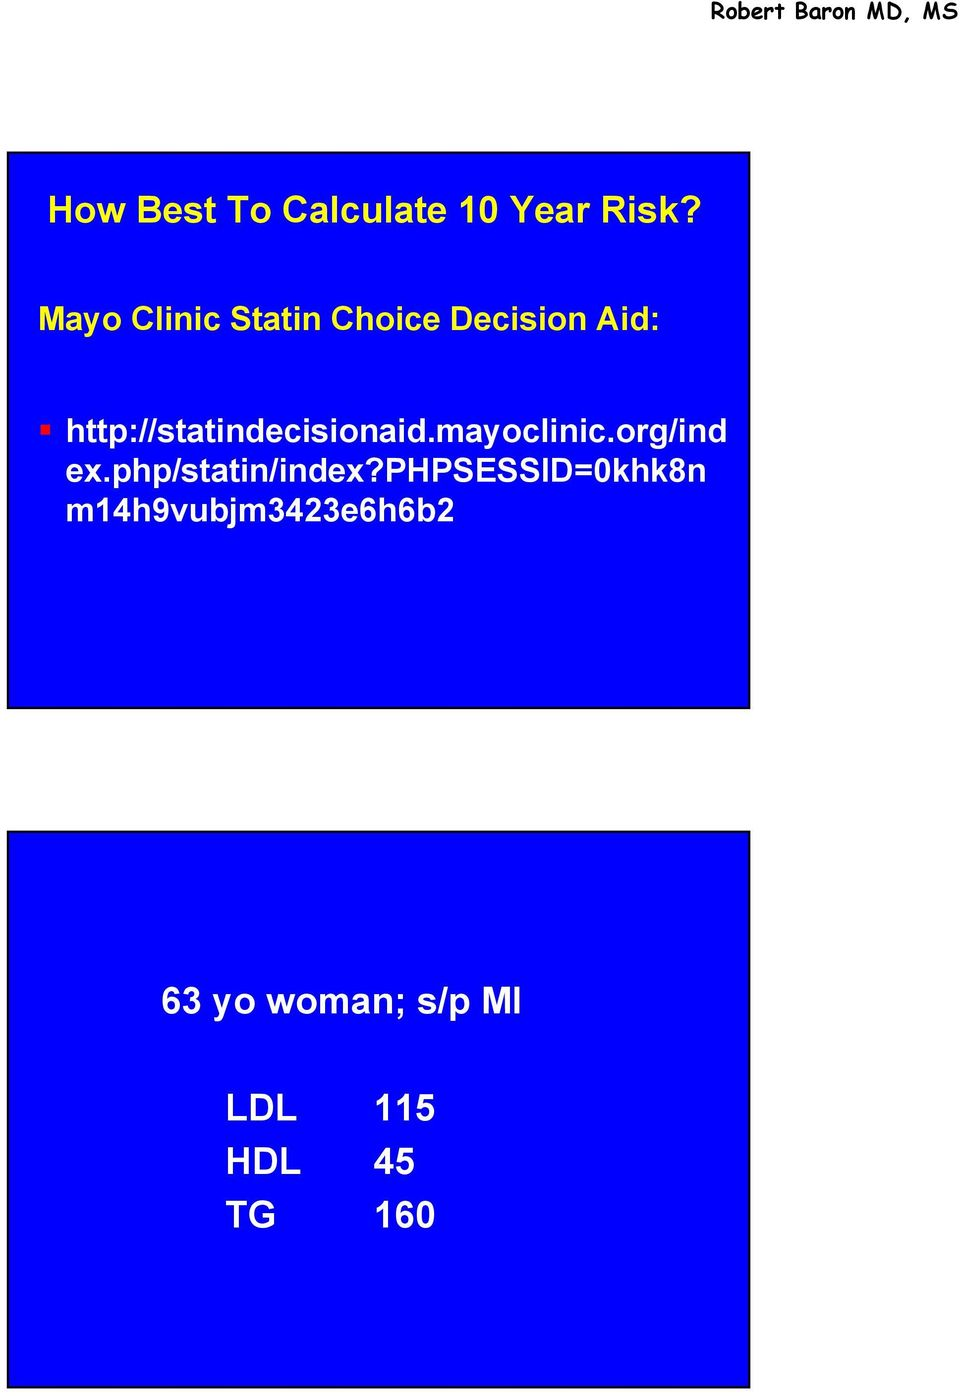 http://statindecisionaid.mayoclinic.org/ind ex.